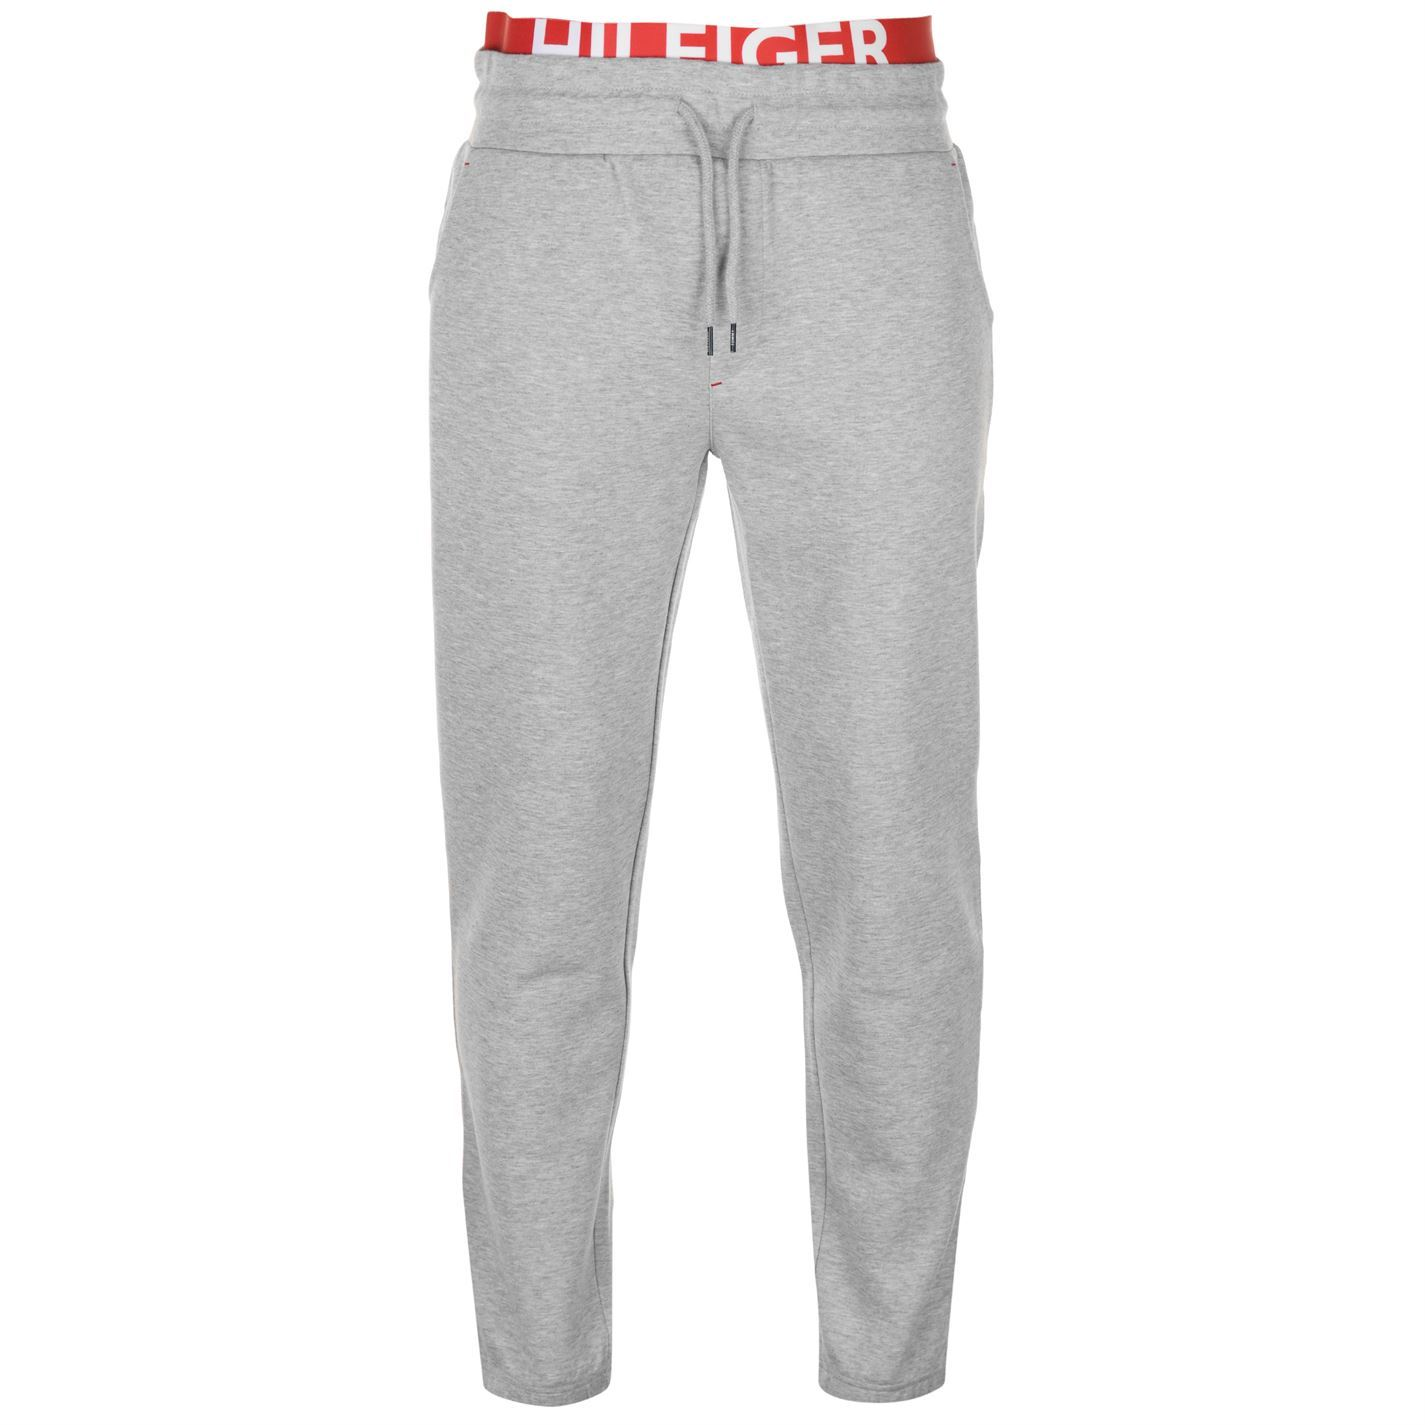 63fcf2278f Details about Mens Tommy Jeans Cuffed Jersey Pants Fleece Jogging Bottoms  Colour Block New